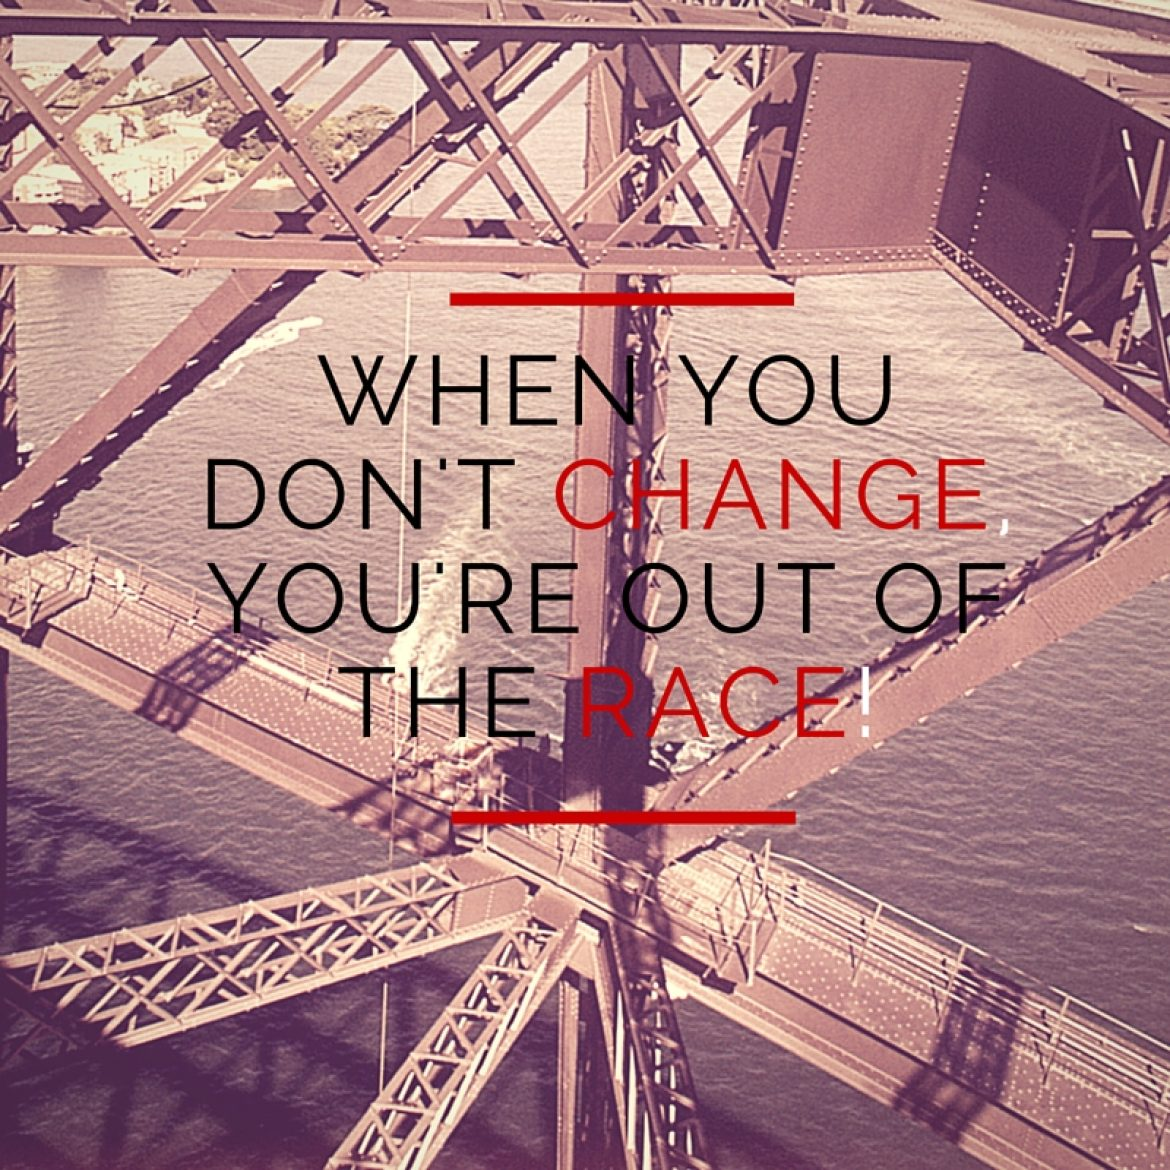 When you don't change, you're out of the race!